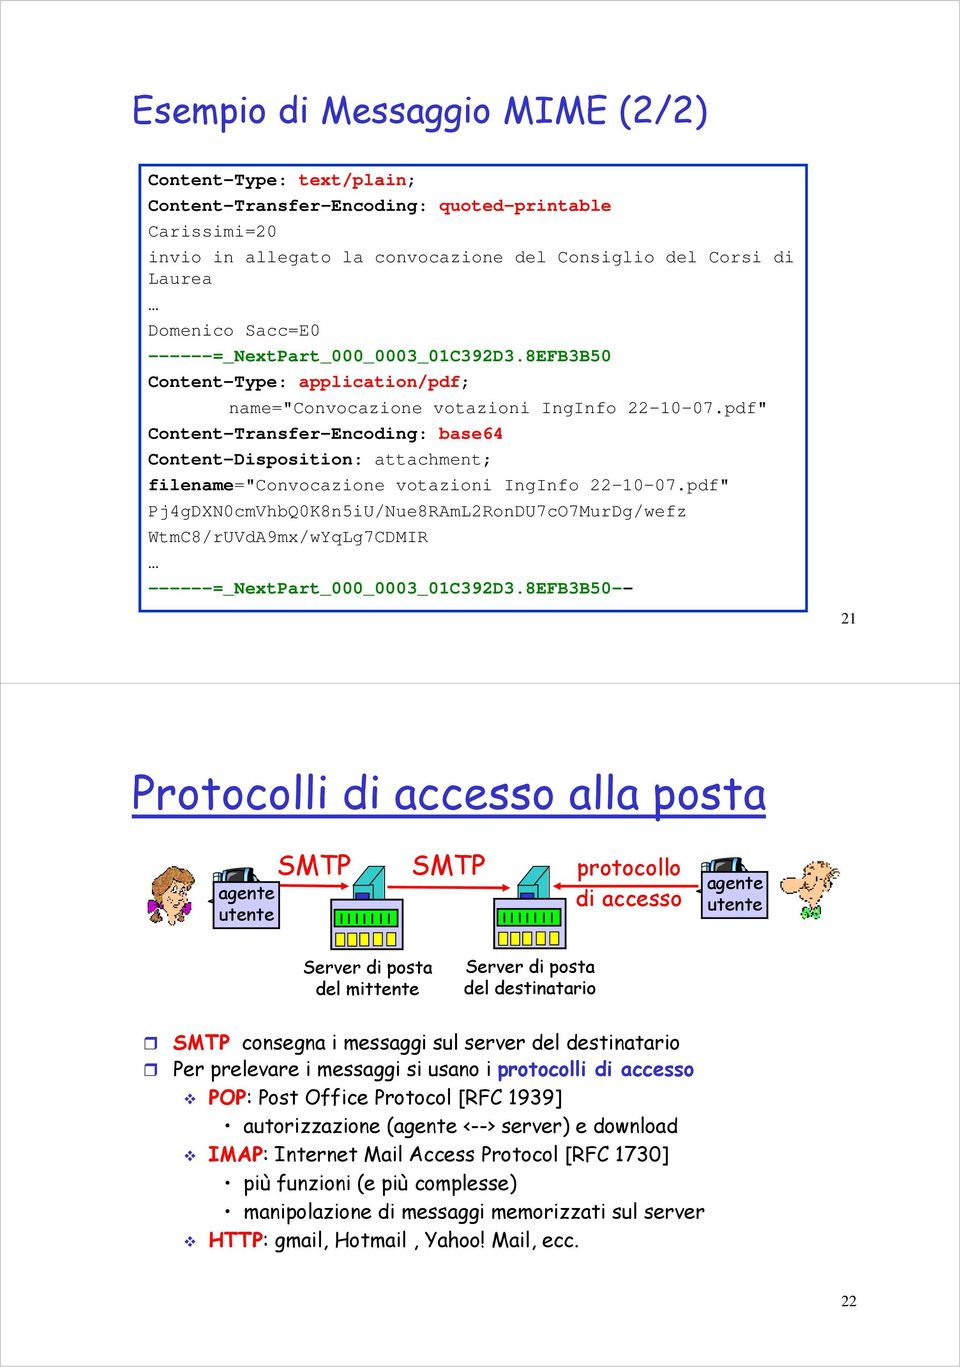 "pdf"" Content-Transfer-Encoding: base64 Content-Disposition: attachment; filename=""convocazione votazioni IngInfo 22-10-07."